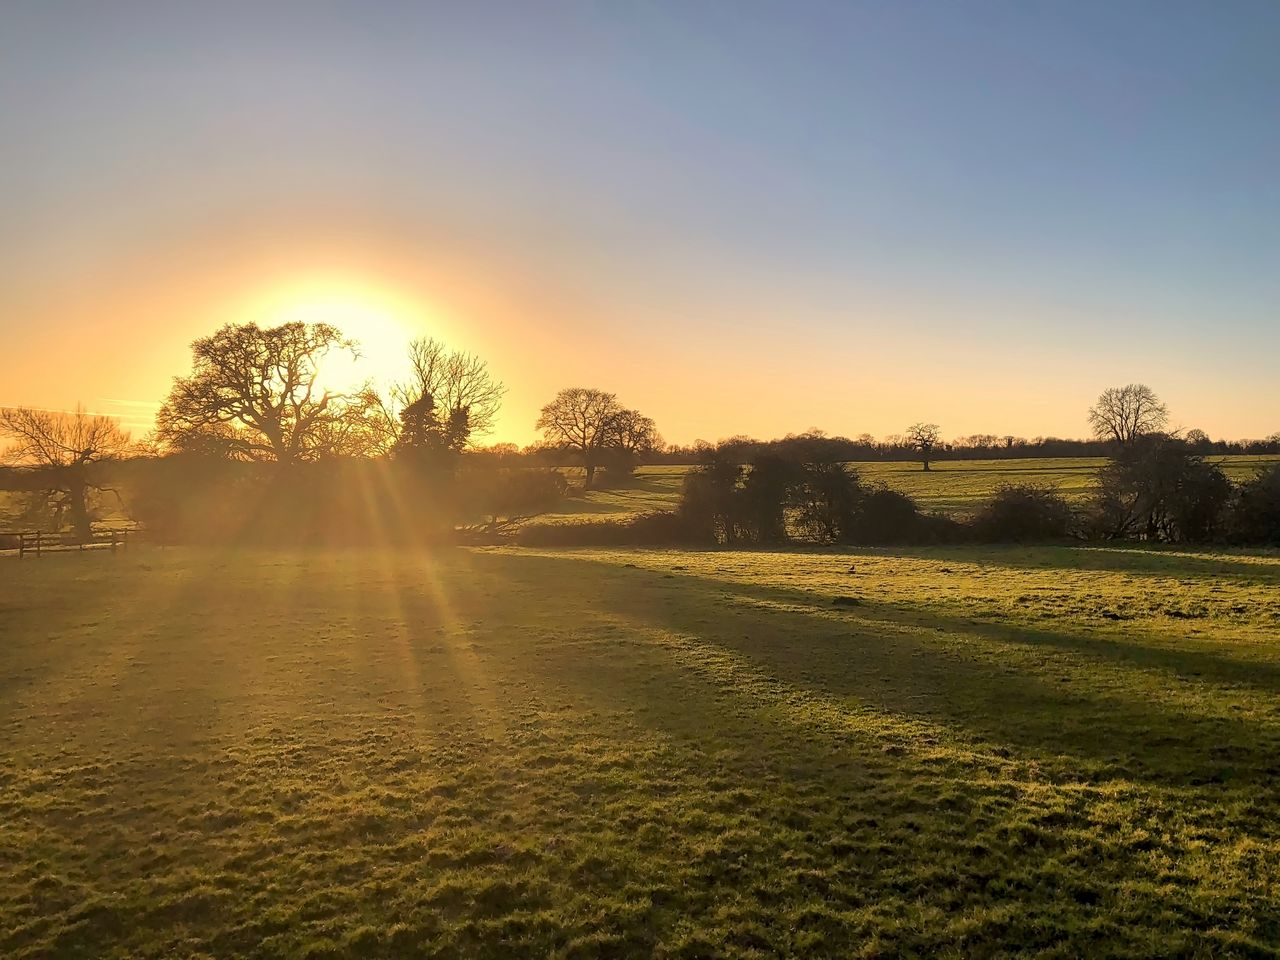 sunset, landscape, tree, beauty in nature, scenics, tranquil scene, nature, sunlight, tranquility, grass, no people, field, sun, outdoors, sky, rural scene, clear sky, day